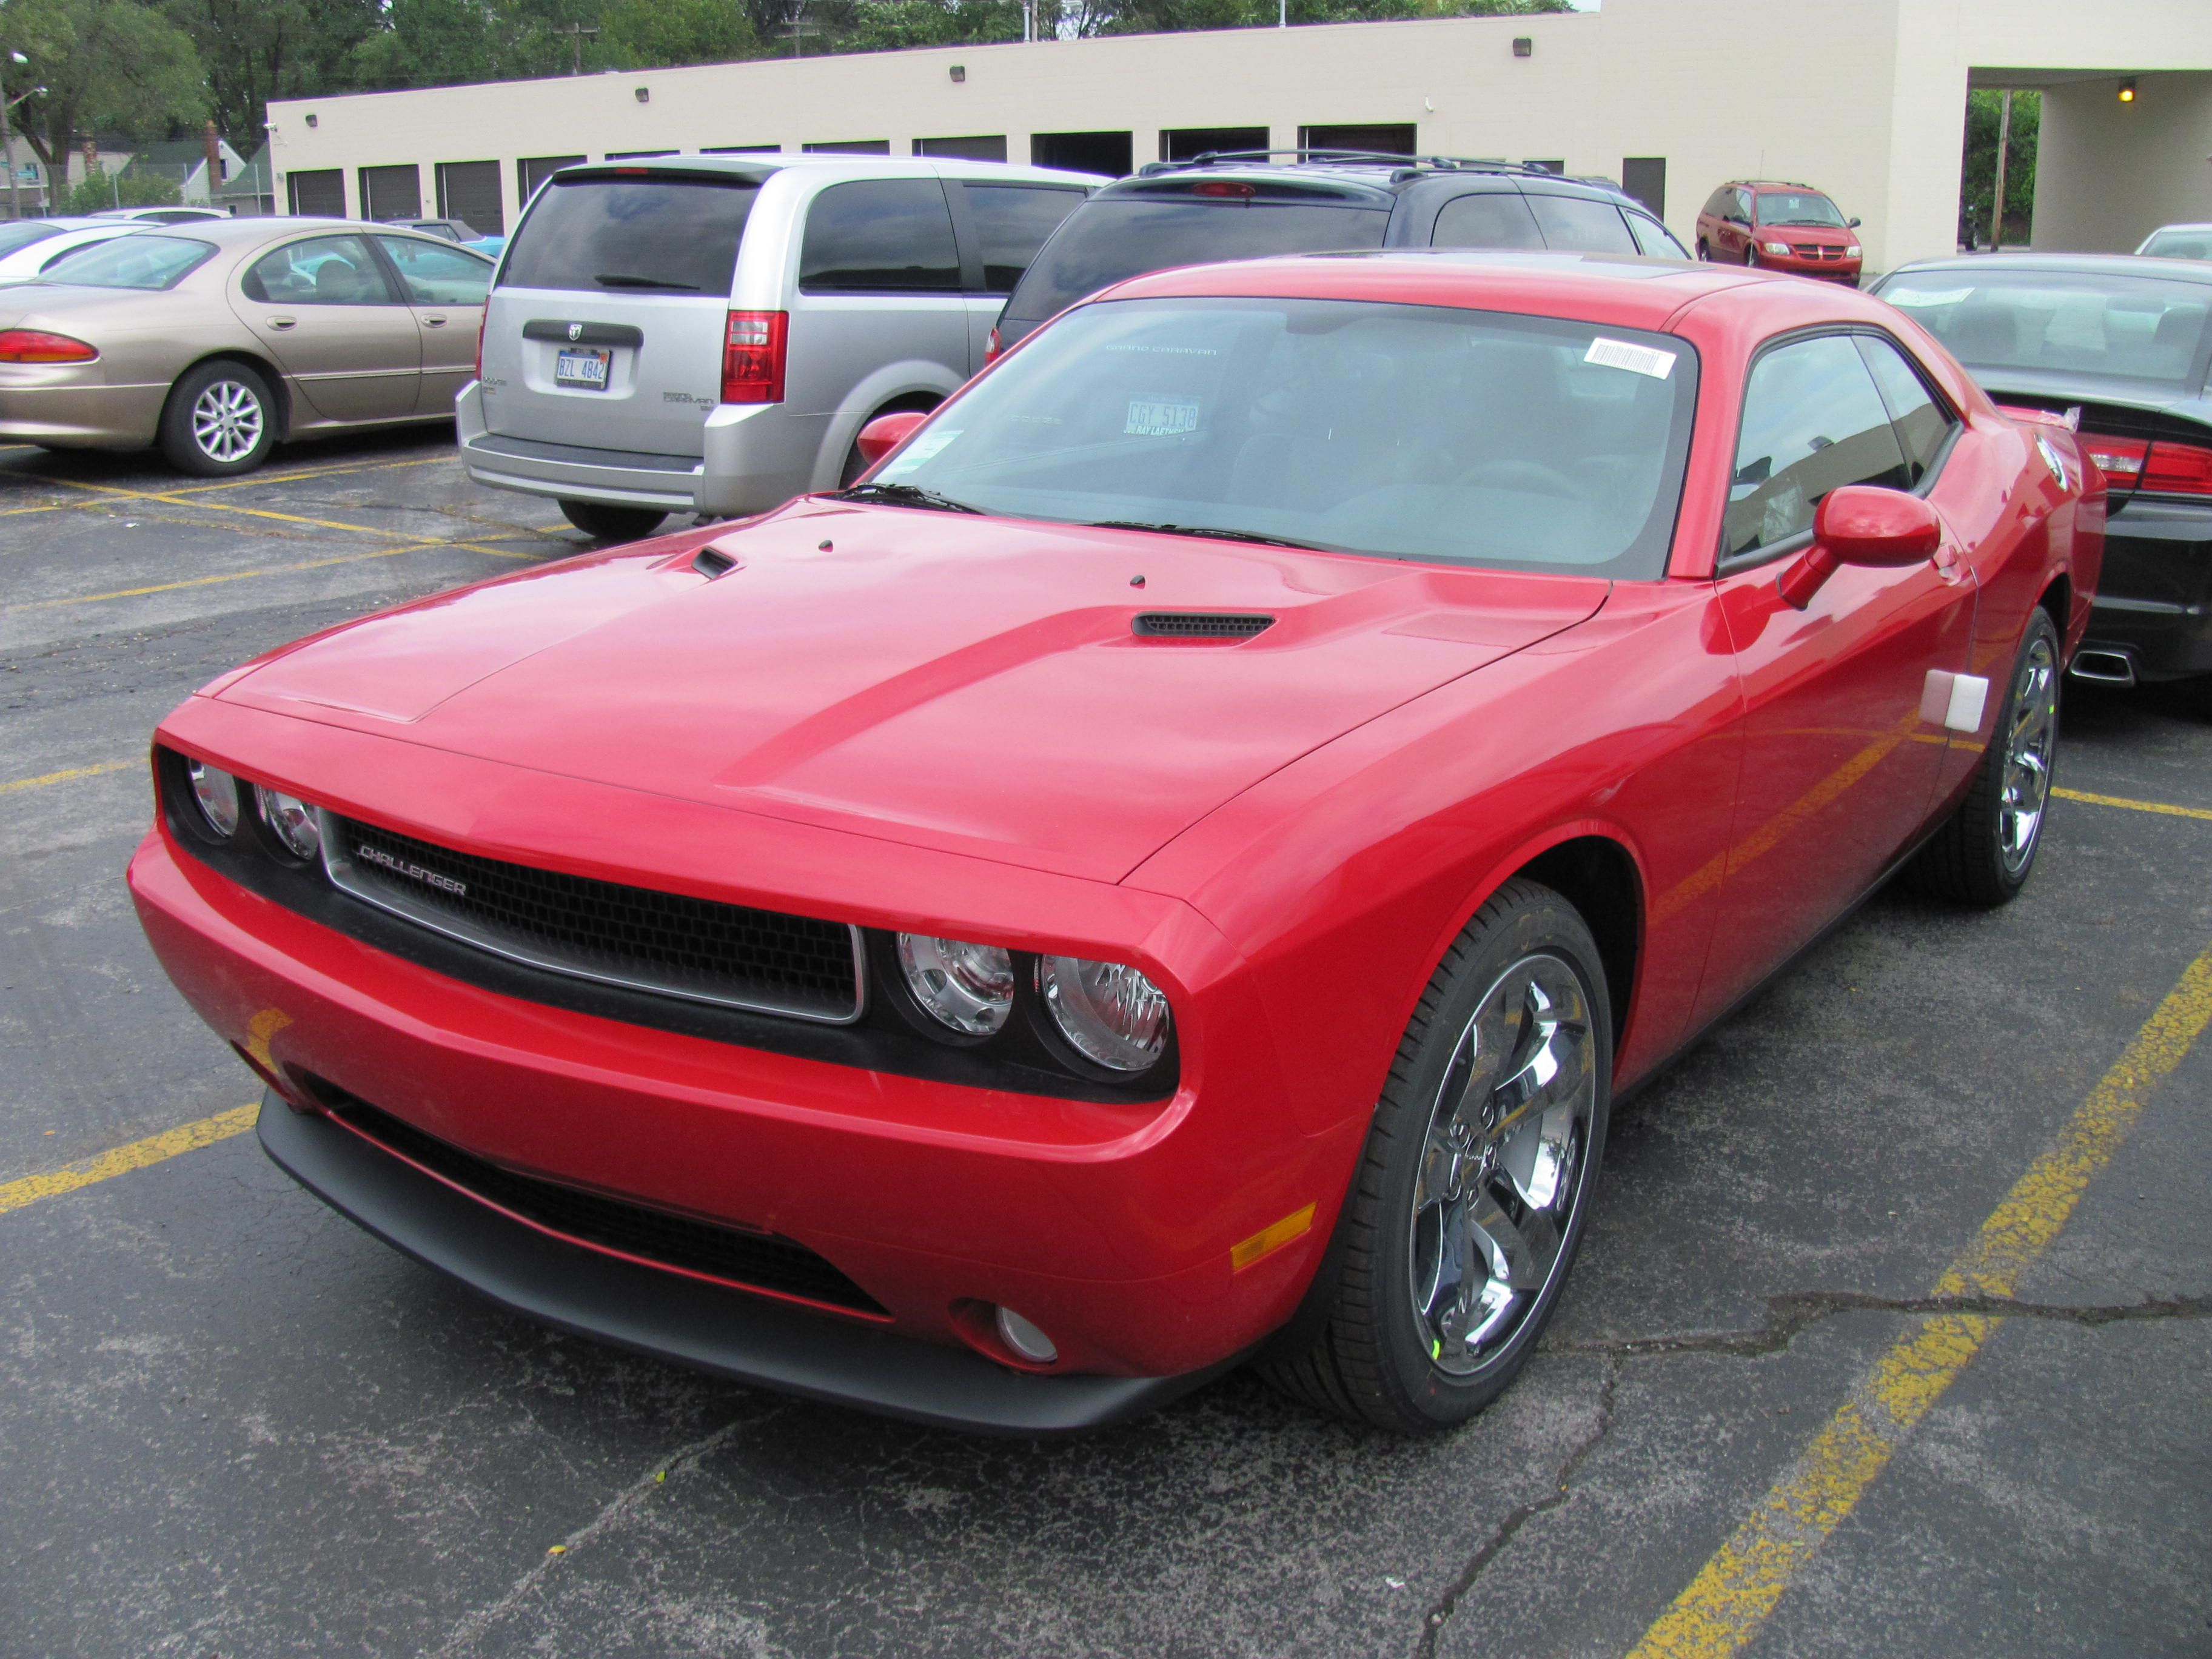 the dodge challenger was one of the more significant cars to come out of the 1960s and 39 70s. Black Bedroom Furniture Sets. Home Design Ideas